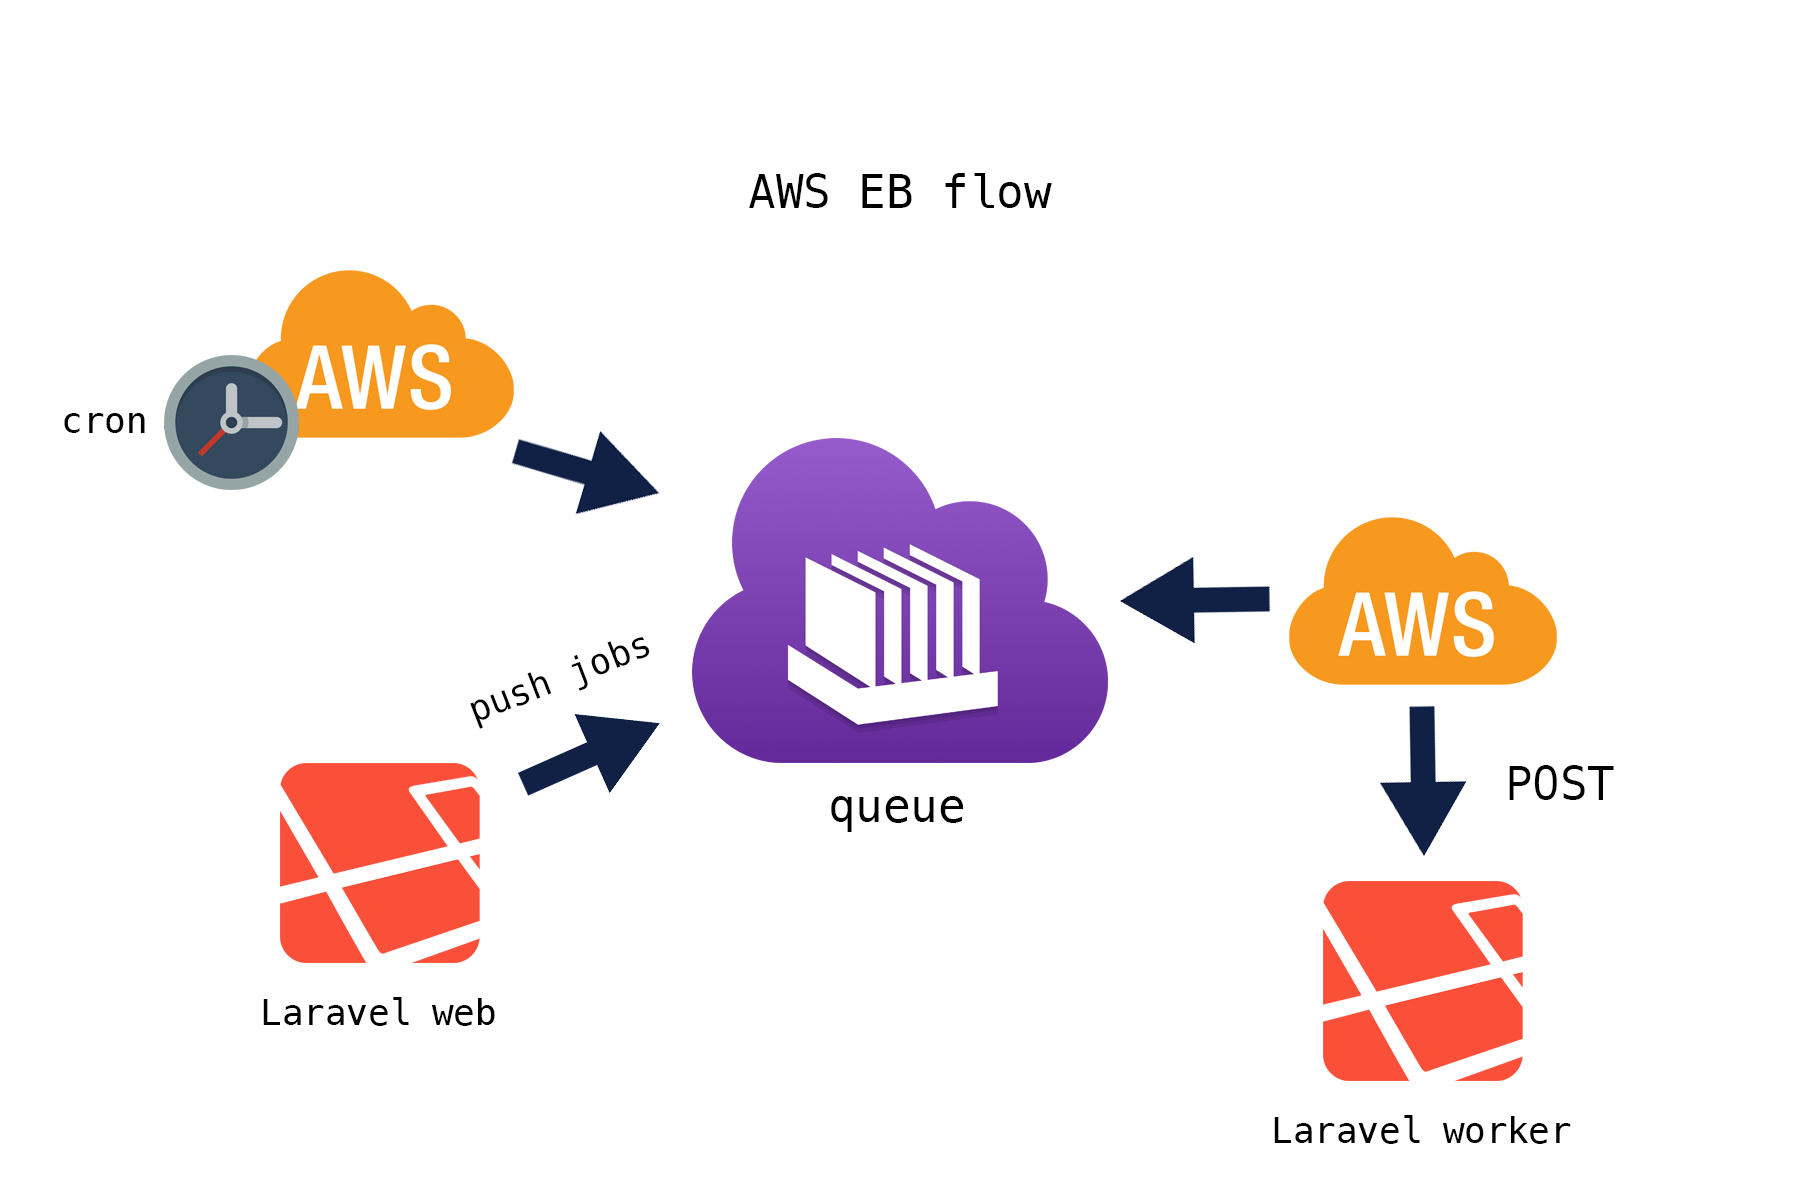 Image credit: https://github.com/dusterio/laravel-aws-worker